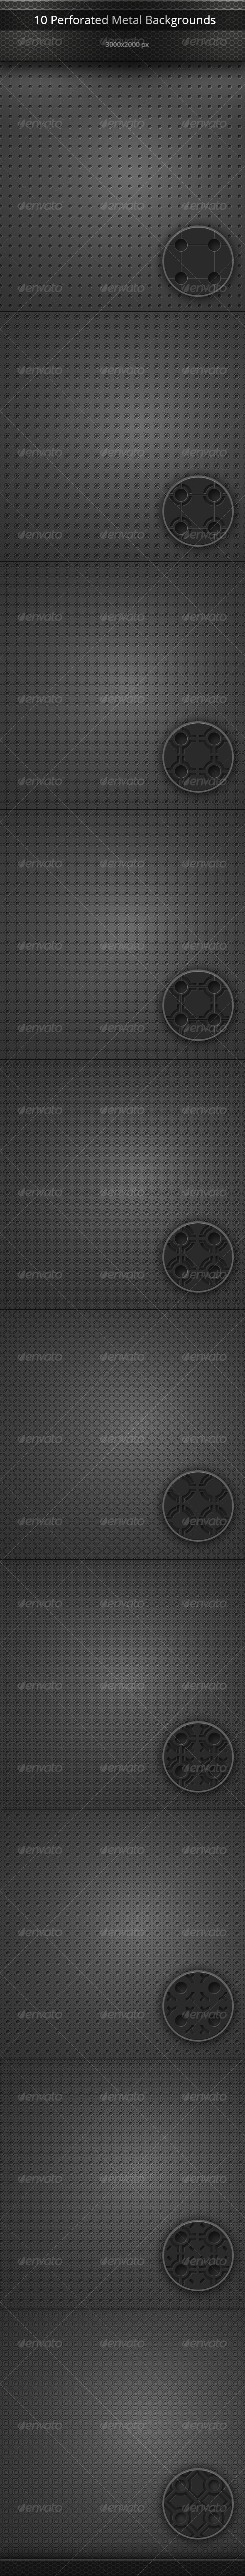 GraphicRiver Perforated Metal Backgrounds Set 8094526